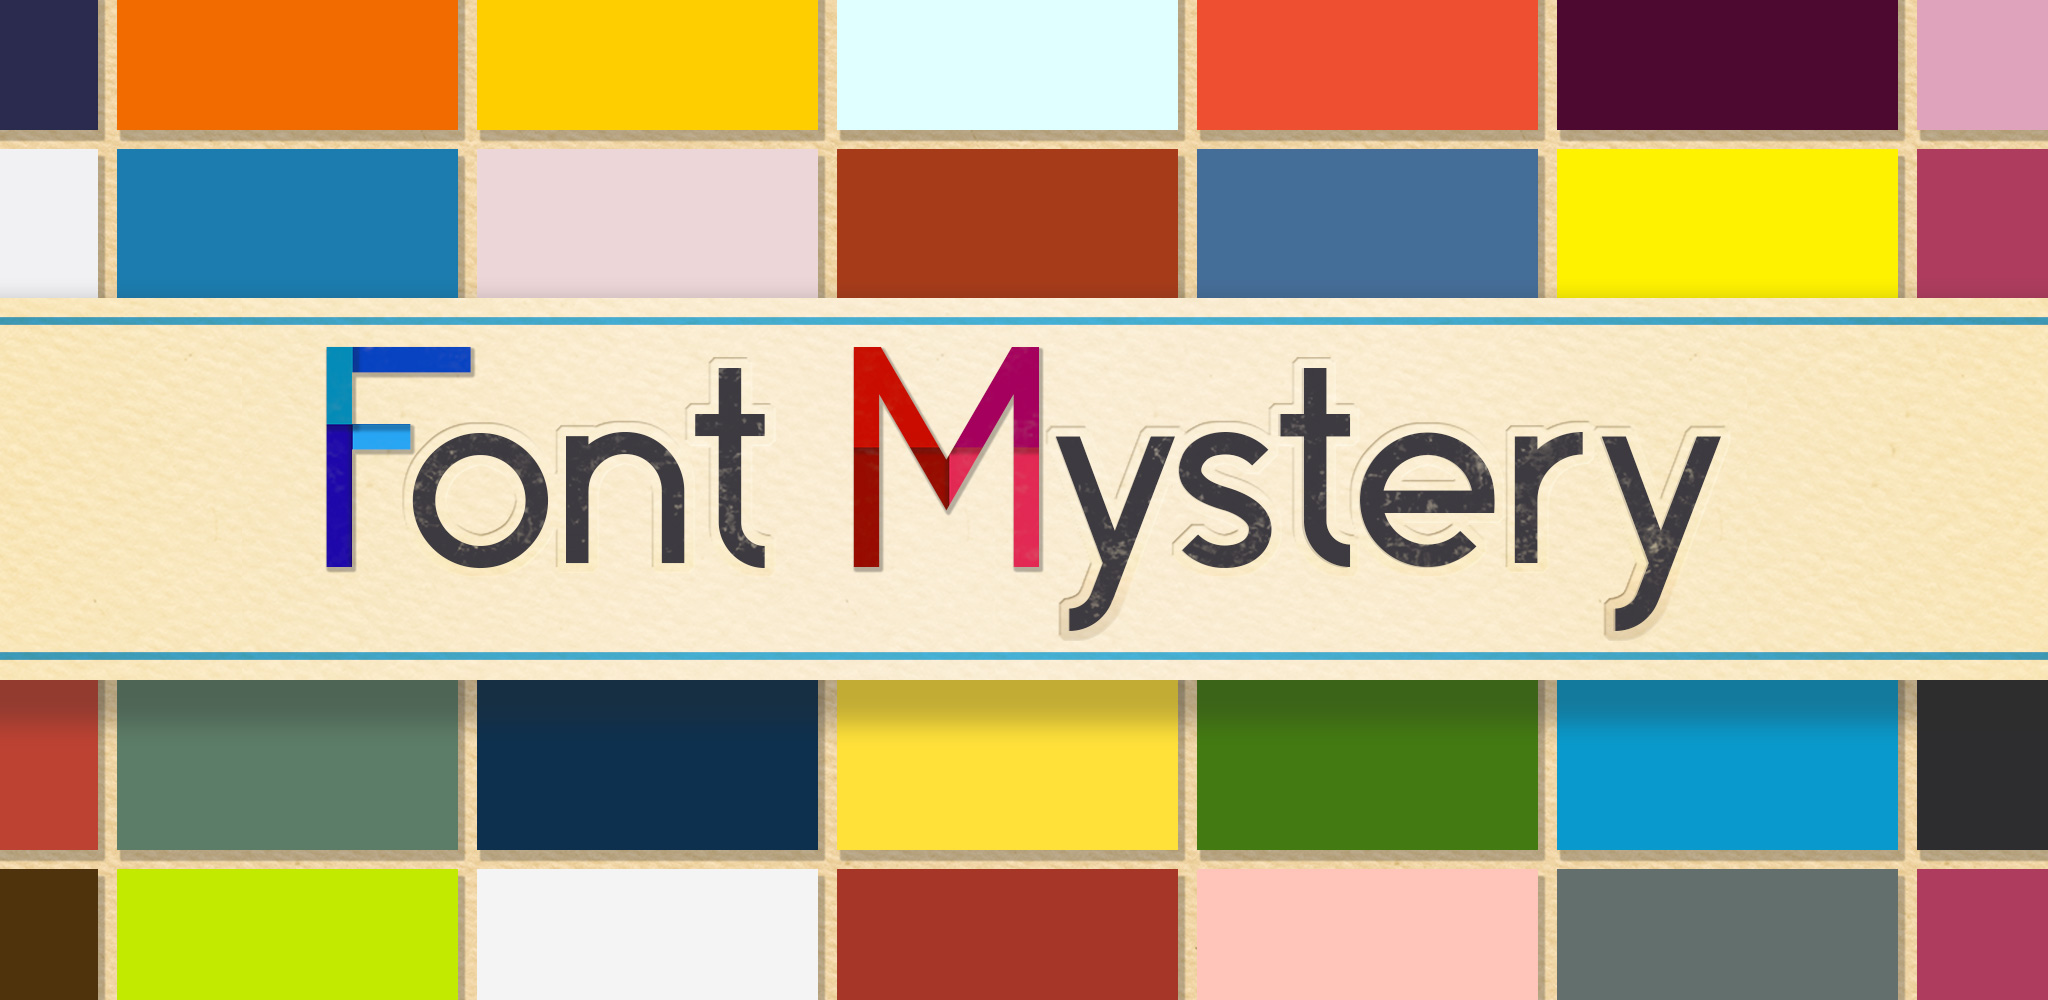 IMAGE(http://www.creativebrothers.io/presskit/fr/font-mystery/images/header.jpg)